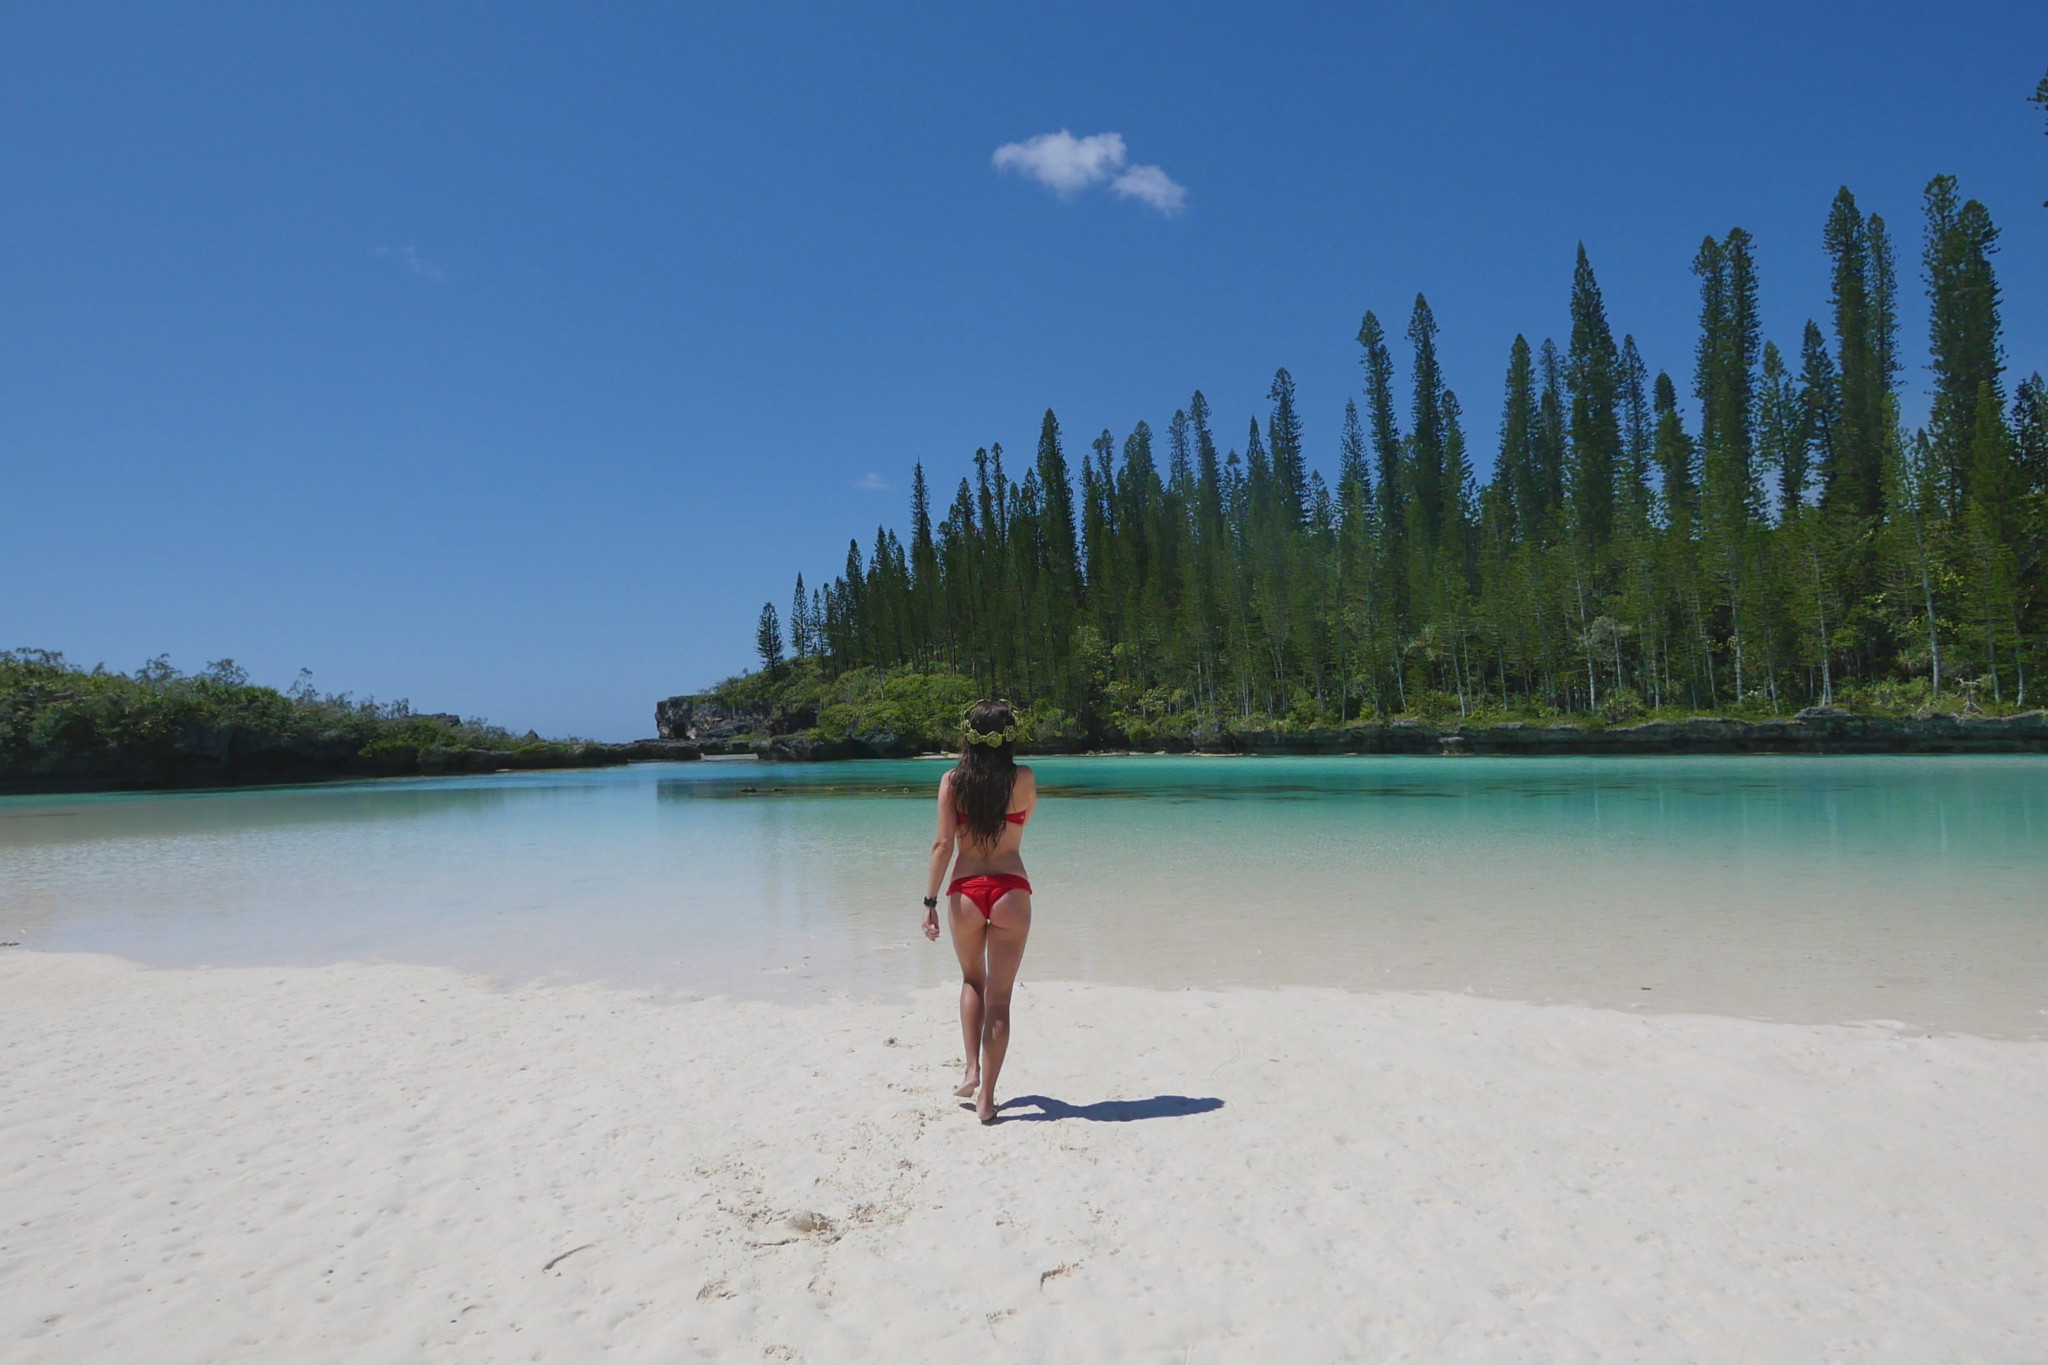 A Video And Article About The Isle Of Pines In New Caledonia